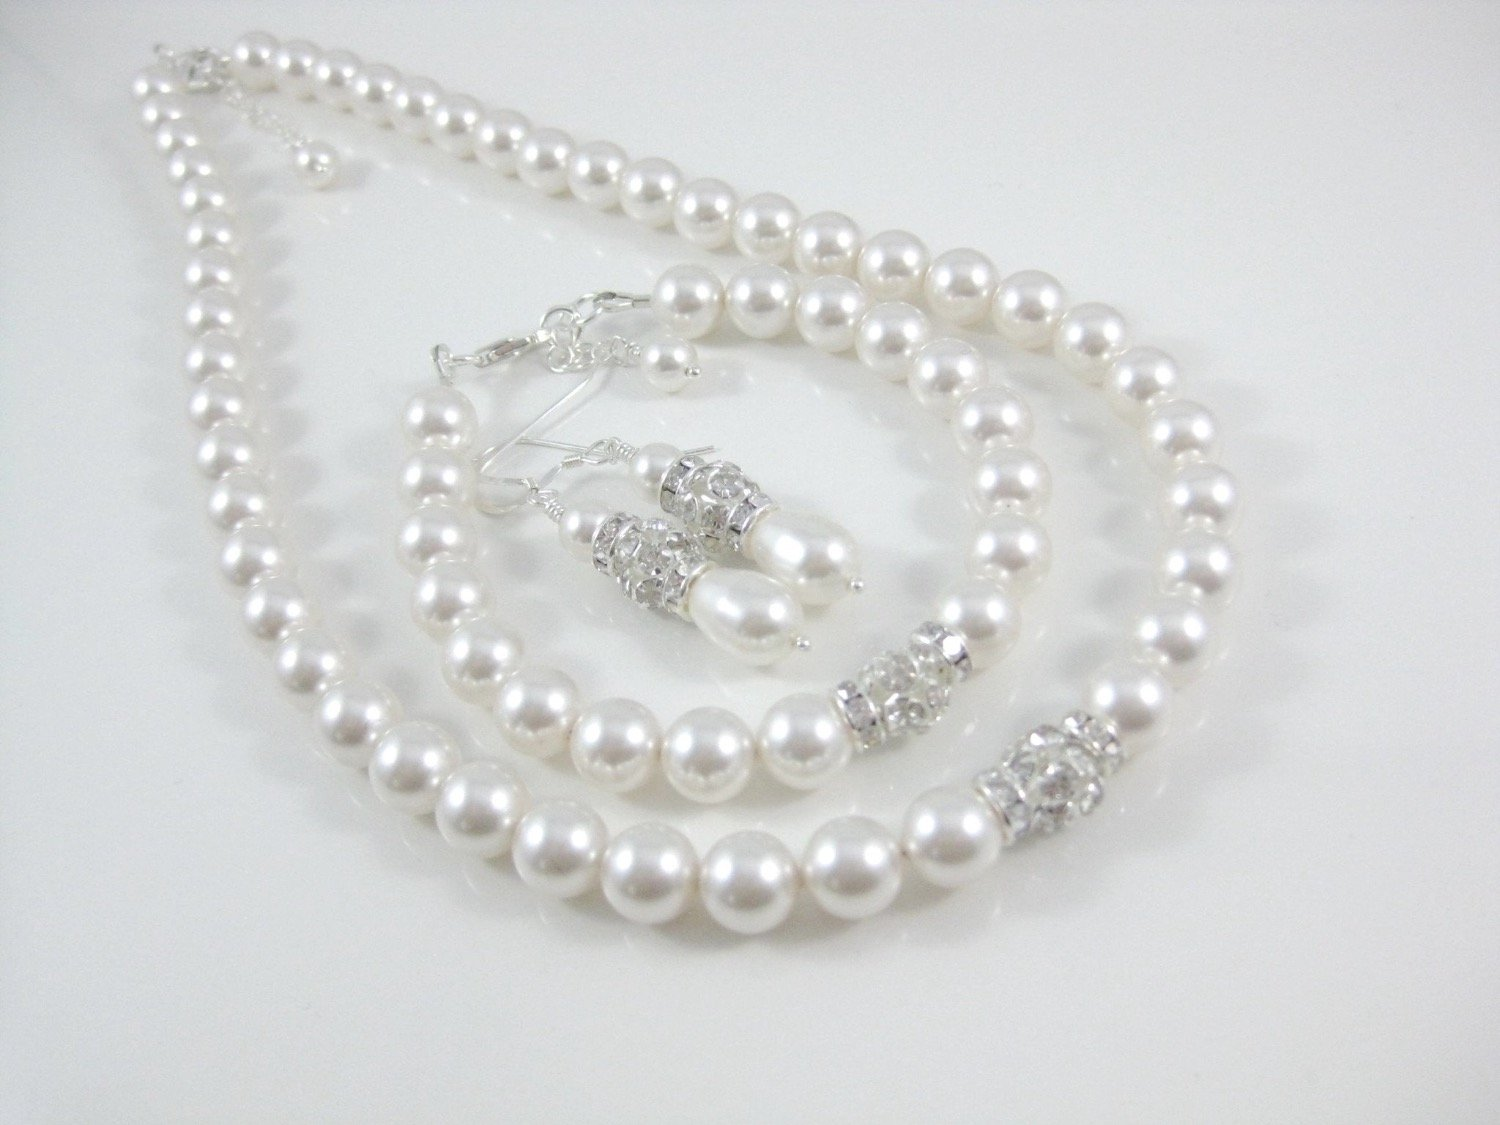 pearl necklace, bracelet and earring set - Clairesbridal - 2